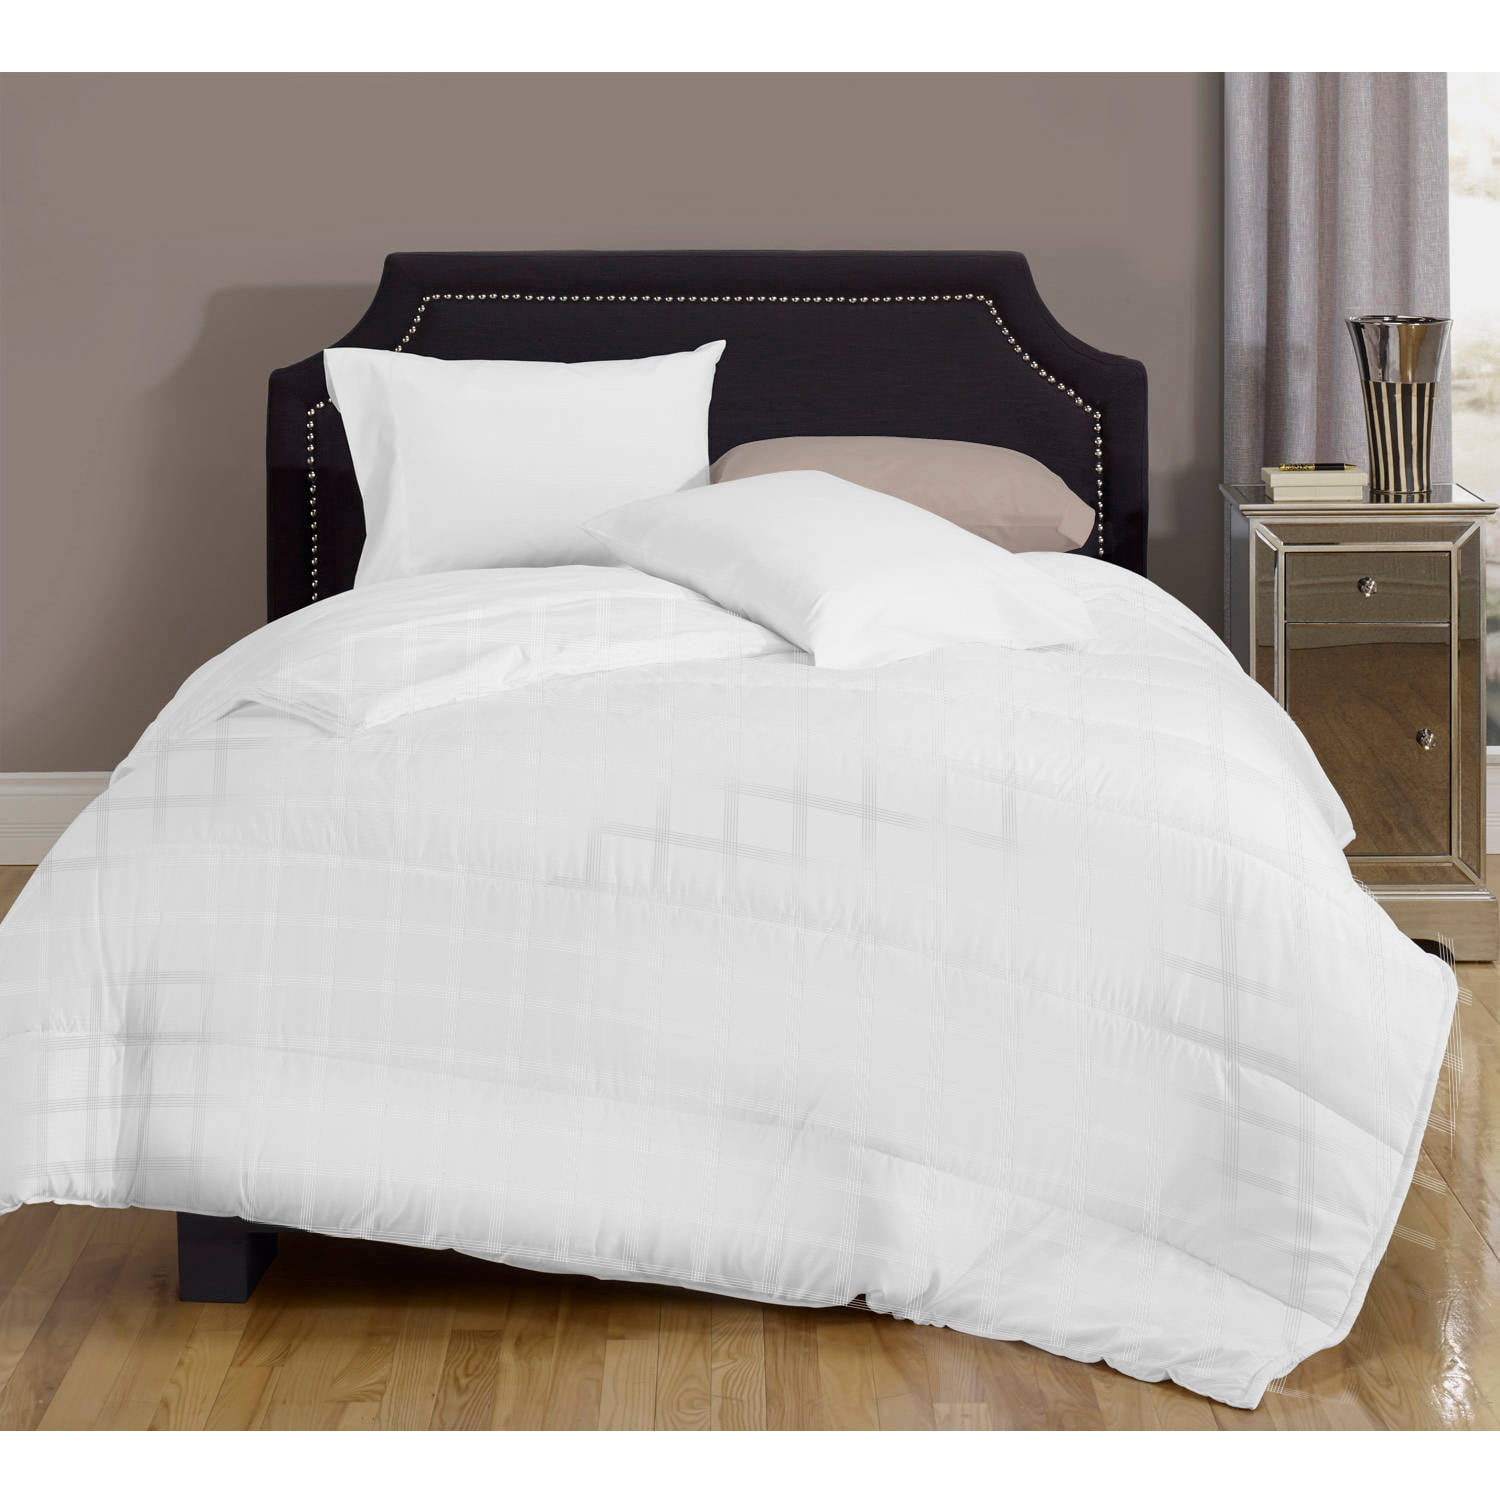 comforters bedding to image prod coast comforter down grand a pacific how summer choose nc blog